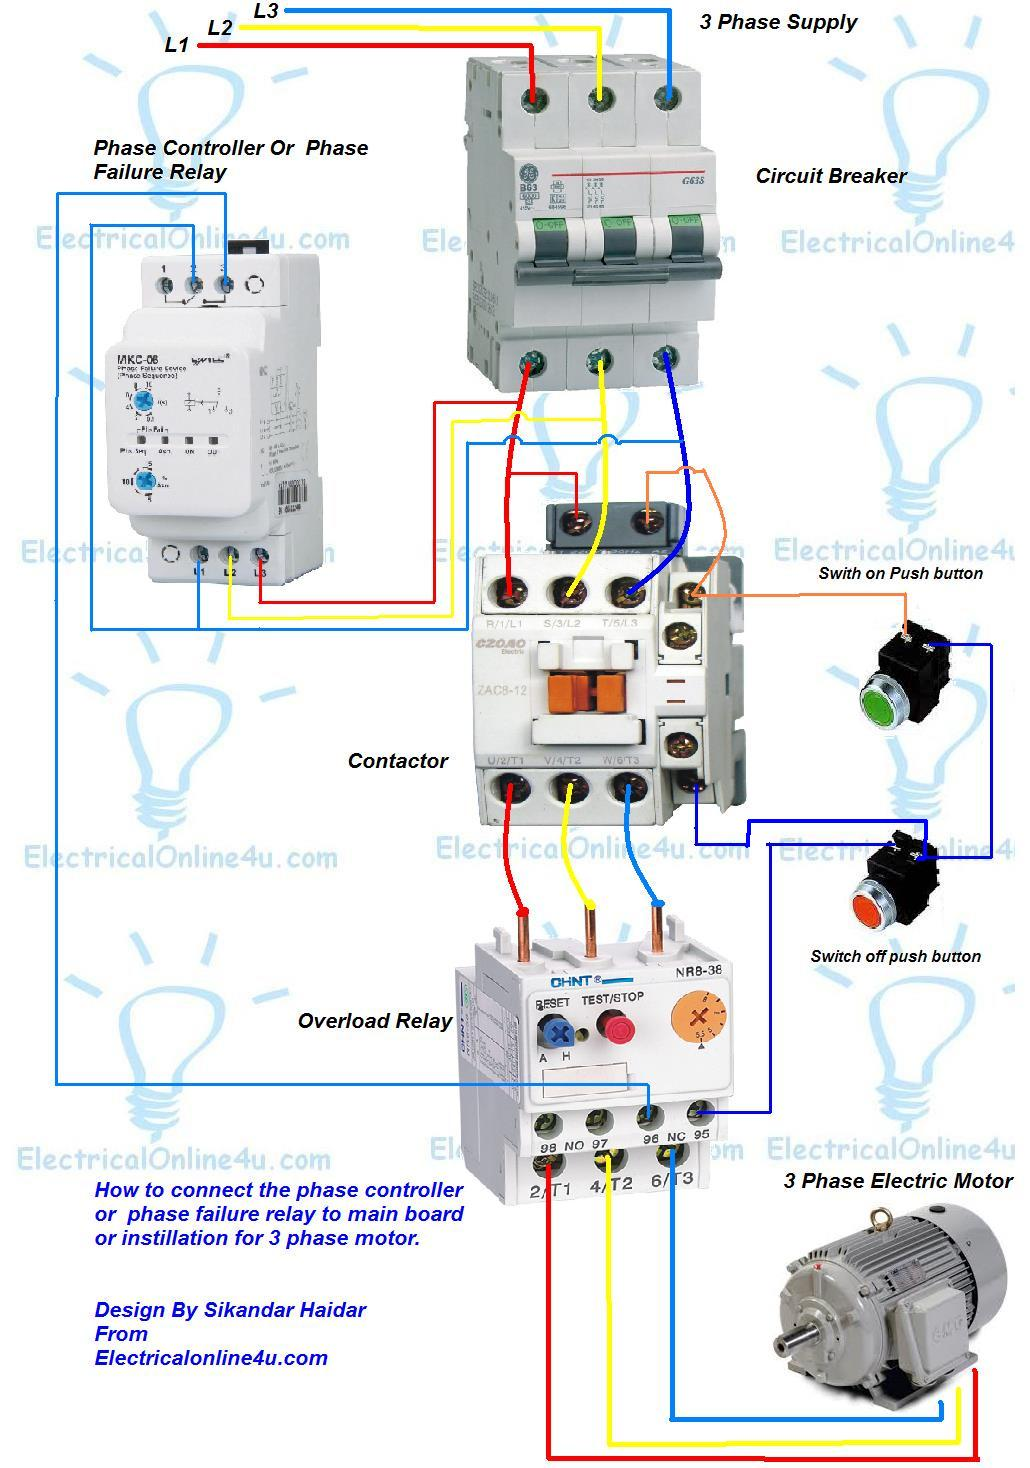 Phase%2Bfailure%2Brelay%2B %2Bphase%2Bcontroller%2Binstilaion%2Bin%2B3%2Bphase%2BMain%2Bboard%2Bor%2Bfor%2B3%2Bphase%2Bmotor phase controller wiring phase failure relay diagram electrical contactor wiring diagram at nearapp.co